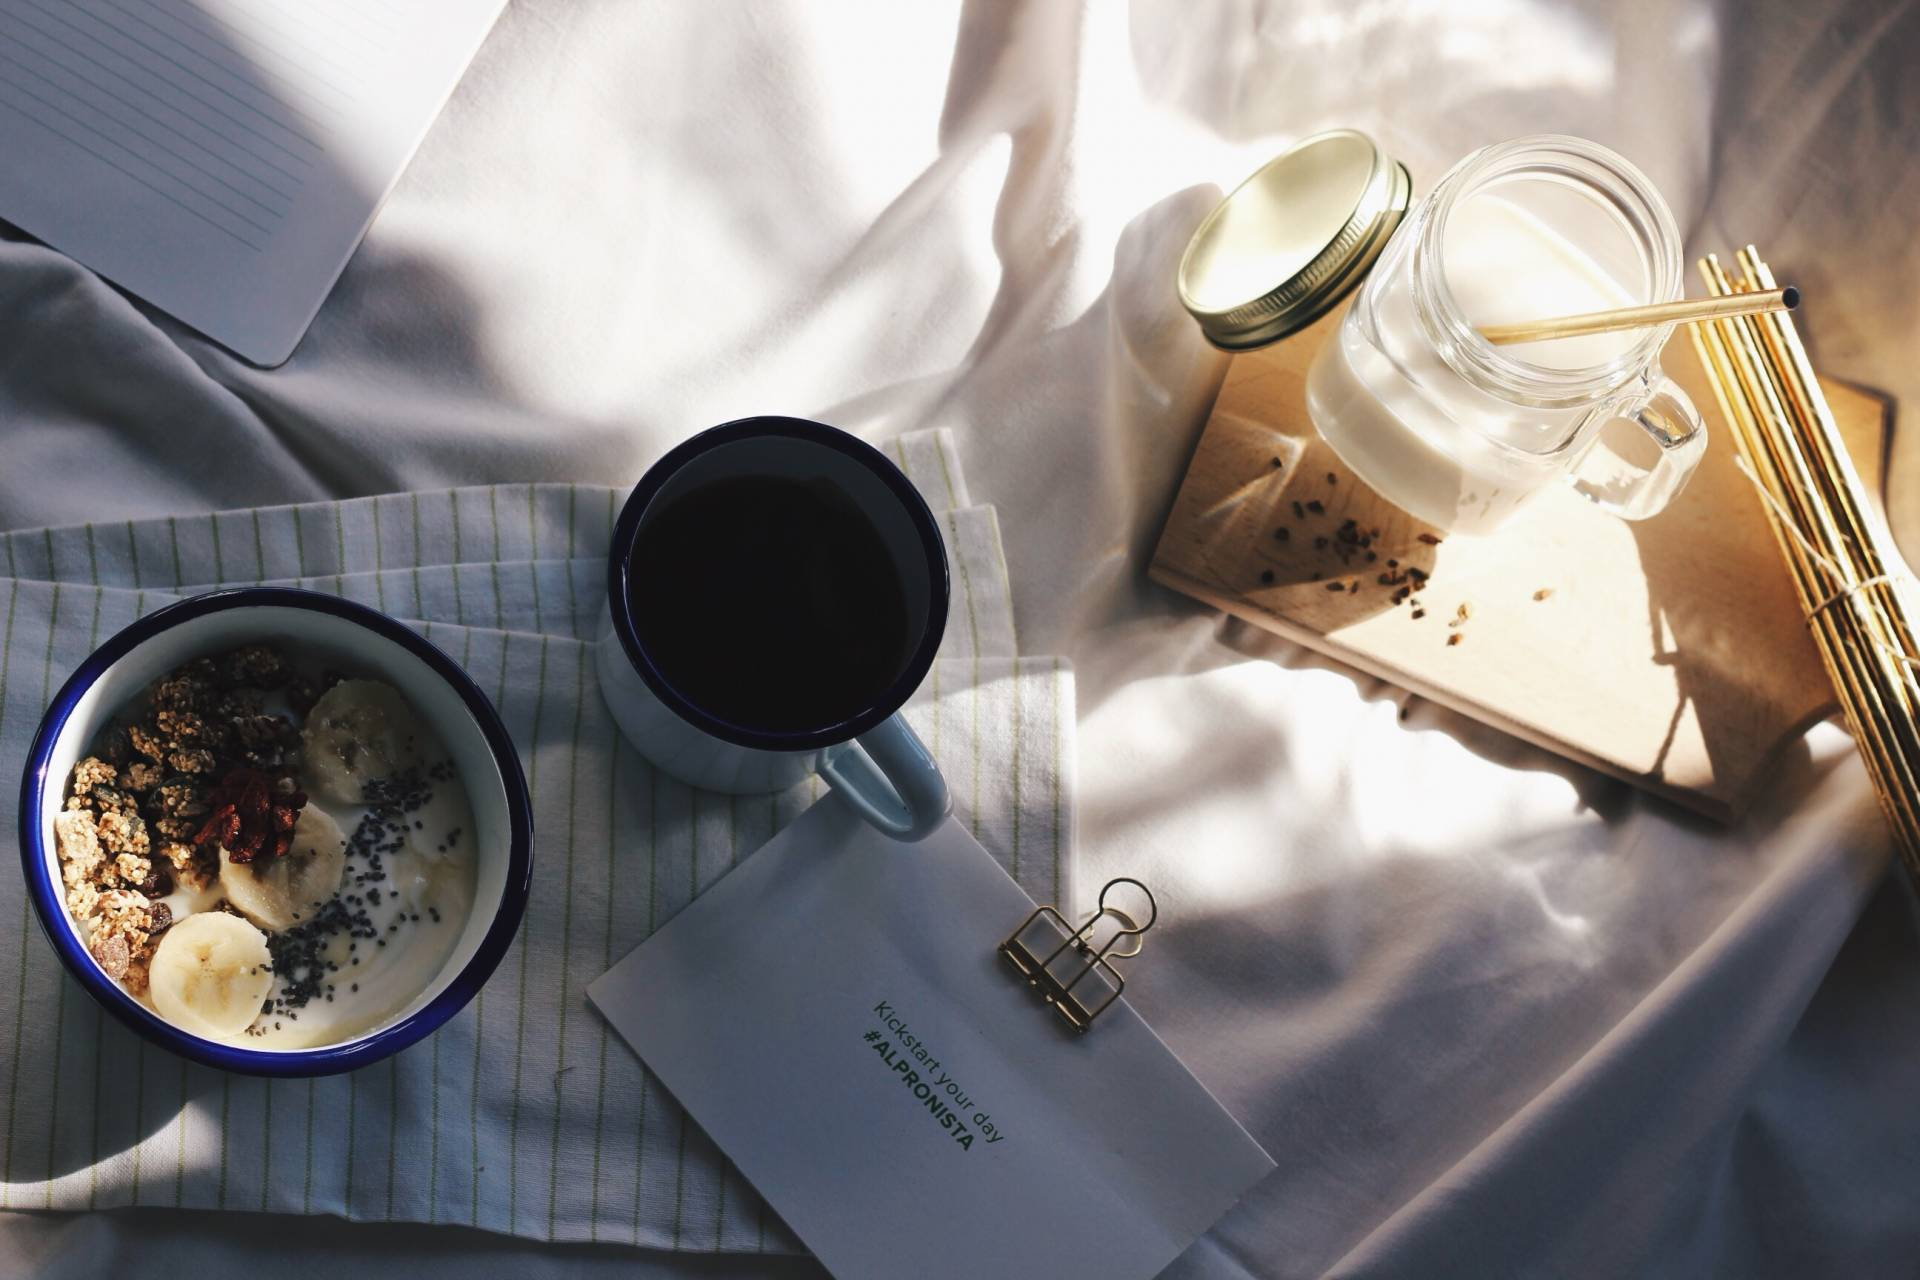 Sunday mornings with Alpro © Yolisa van den Eeden - www.cestyoli.com